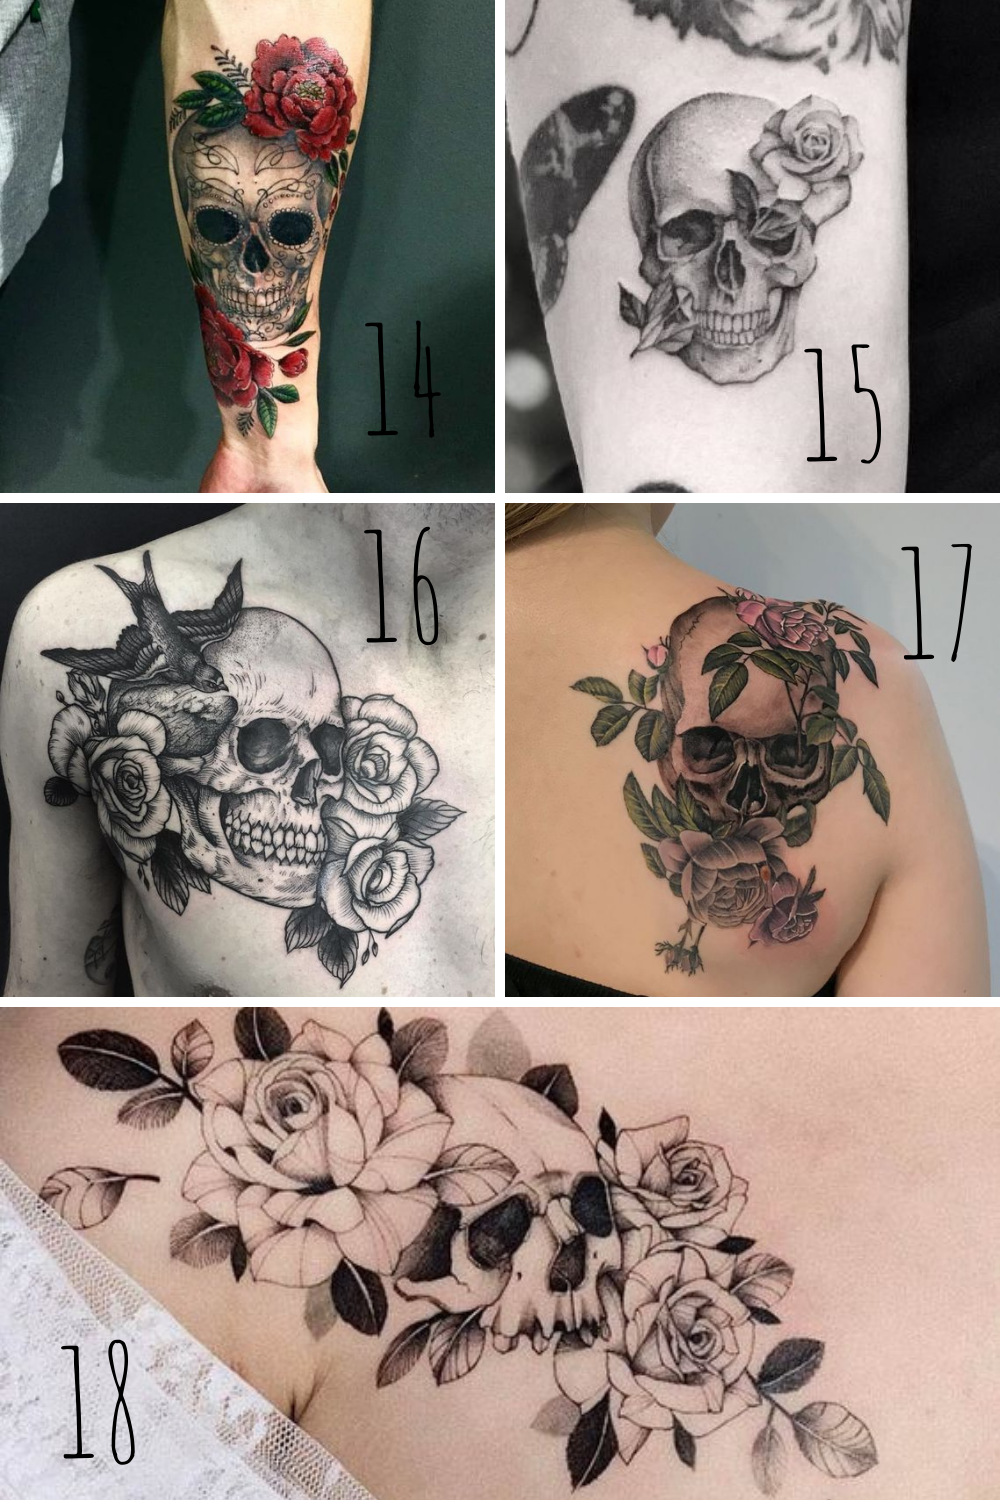 What is a rose and skull tattoo meaning